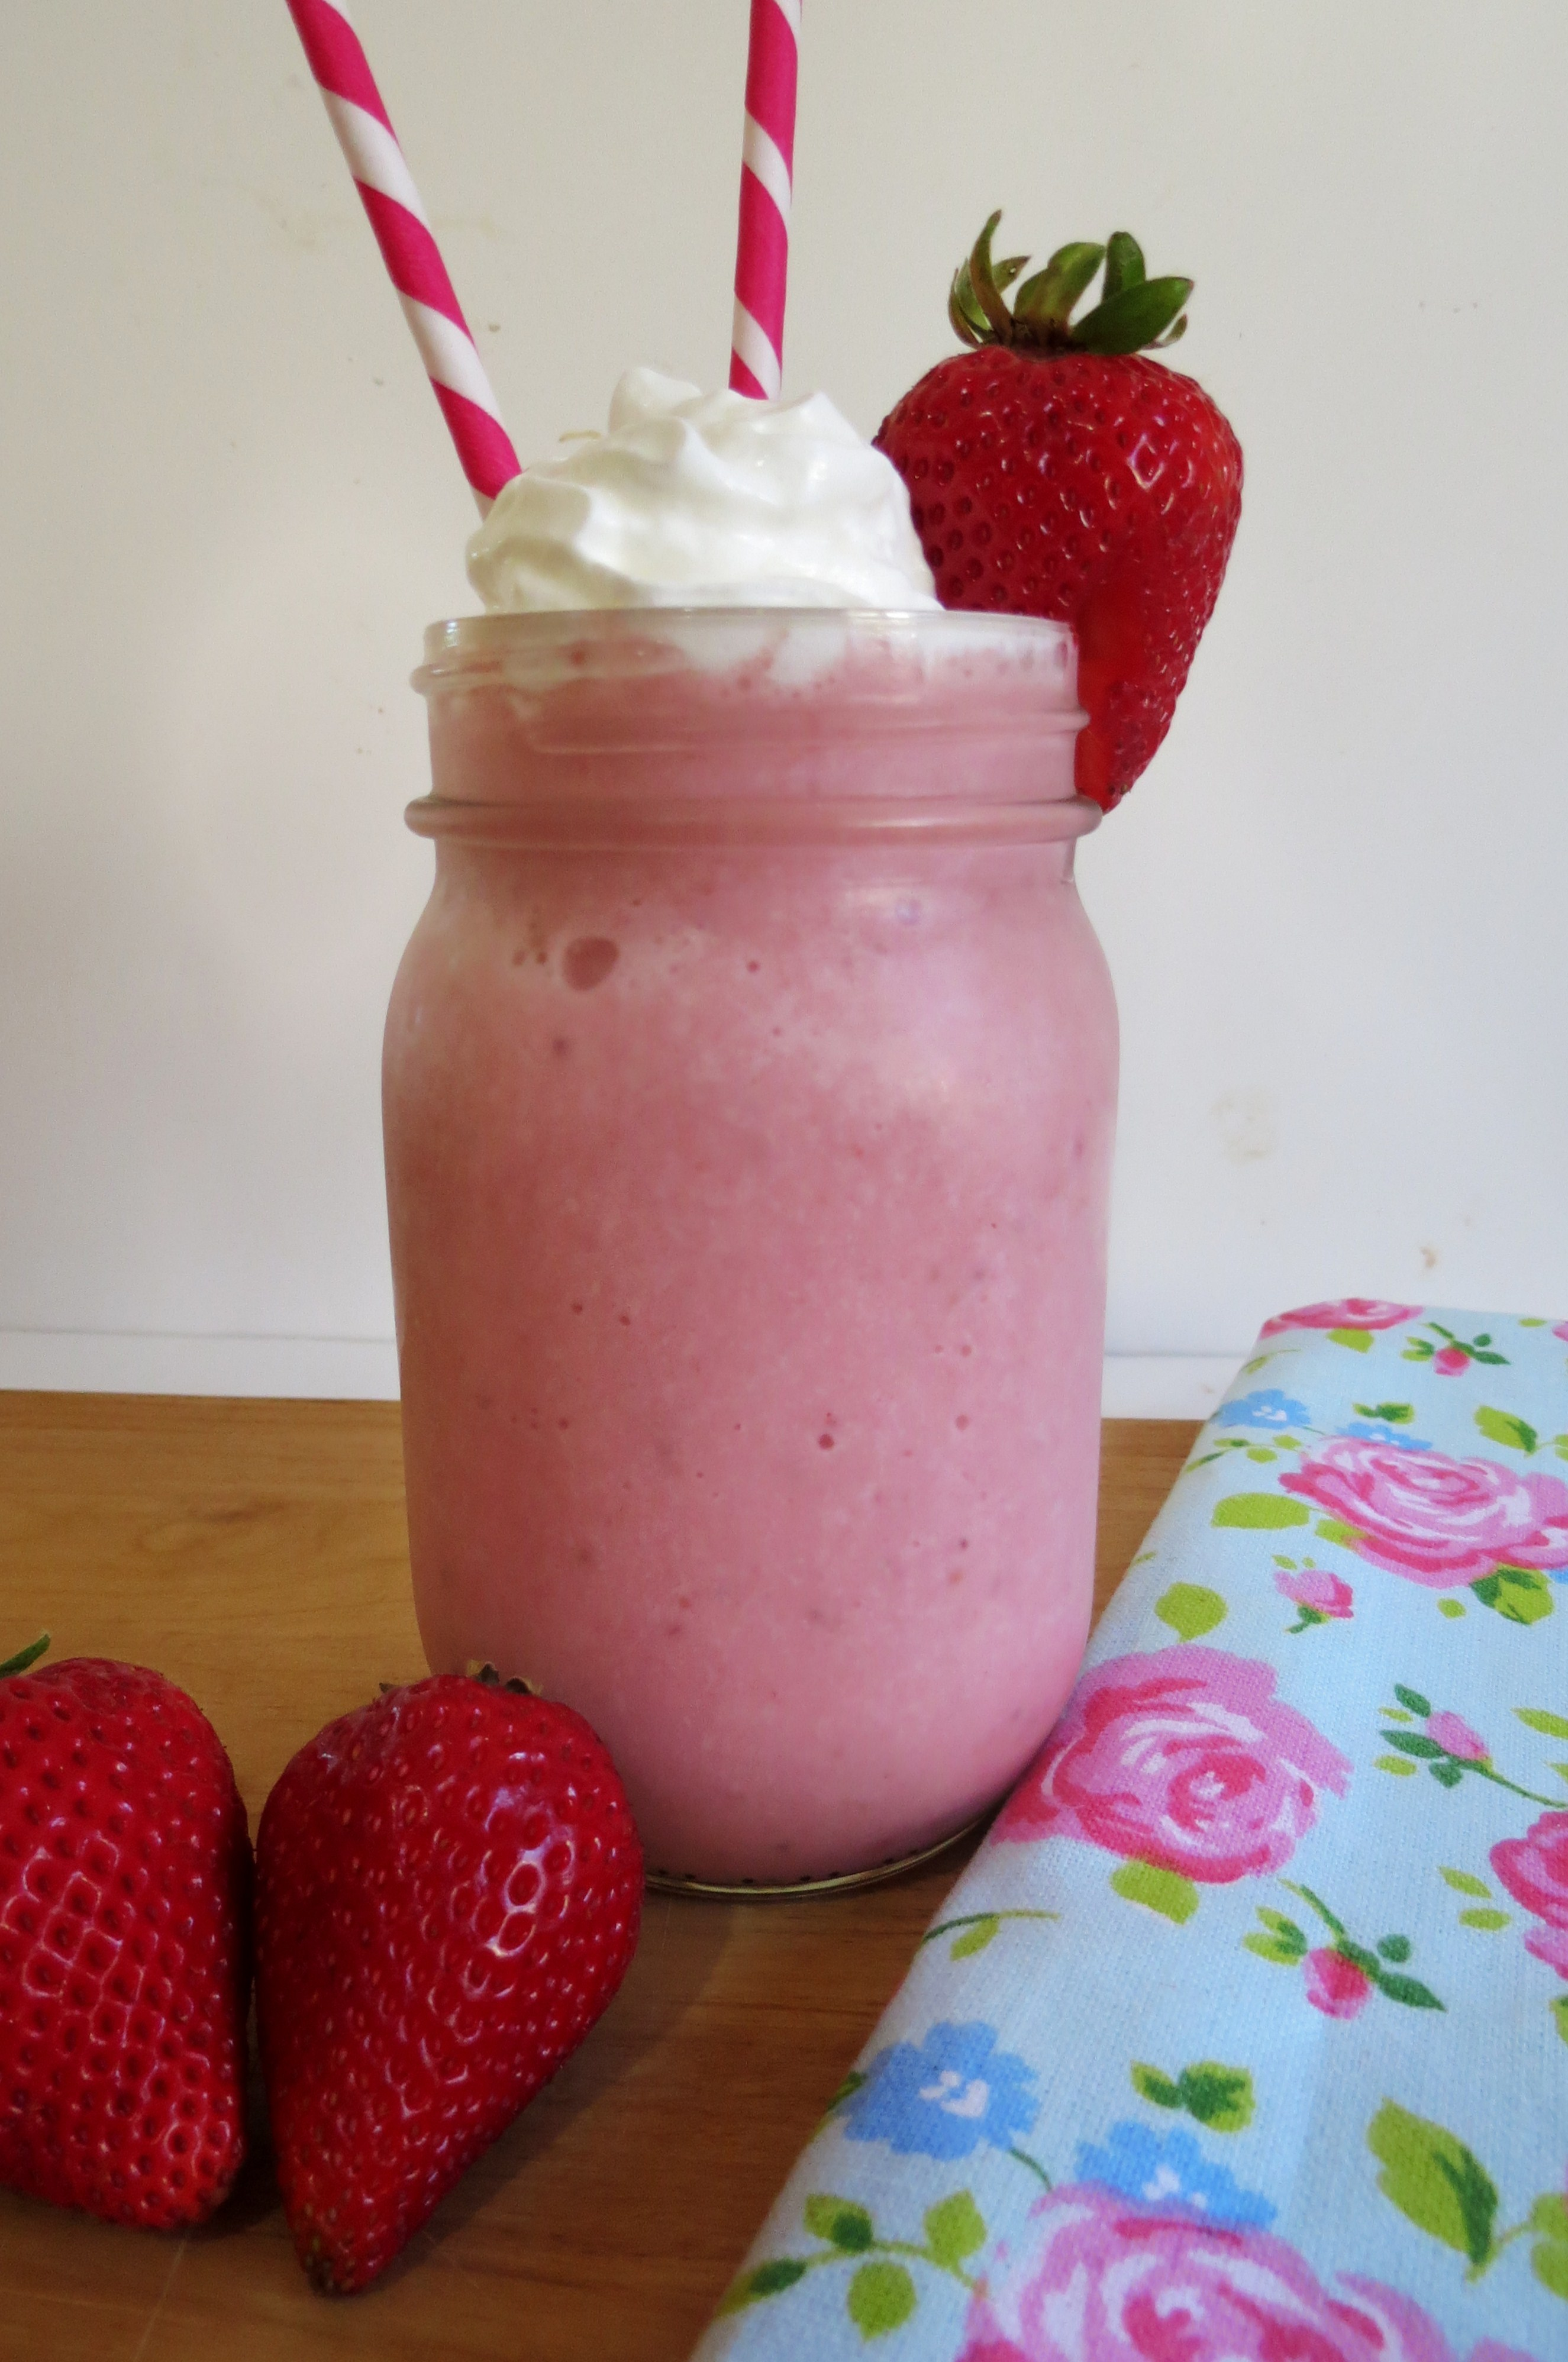 Strawberries and Cream Frappe